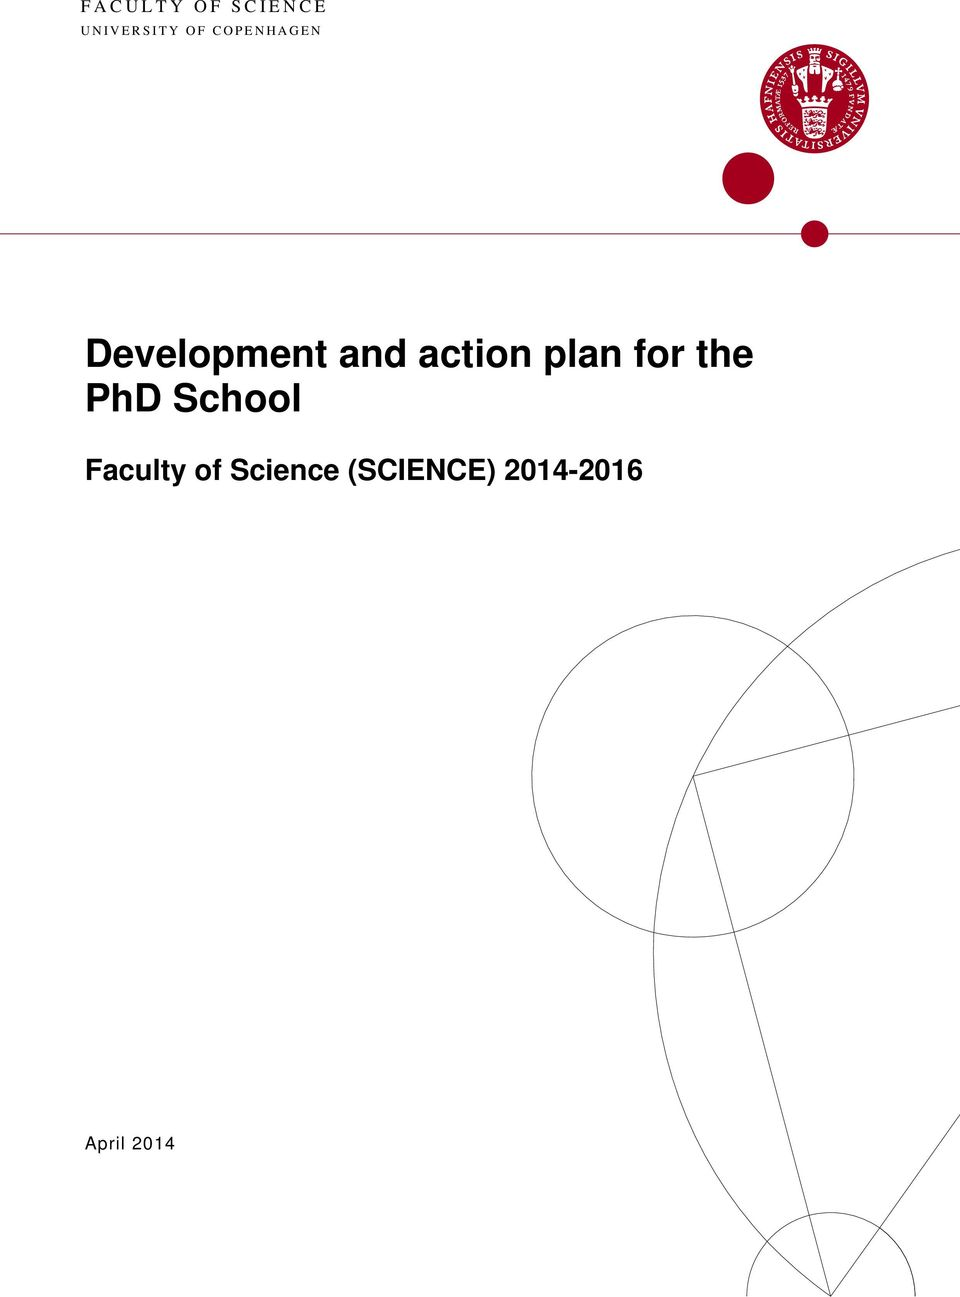 Development and action plan for the PhD